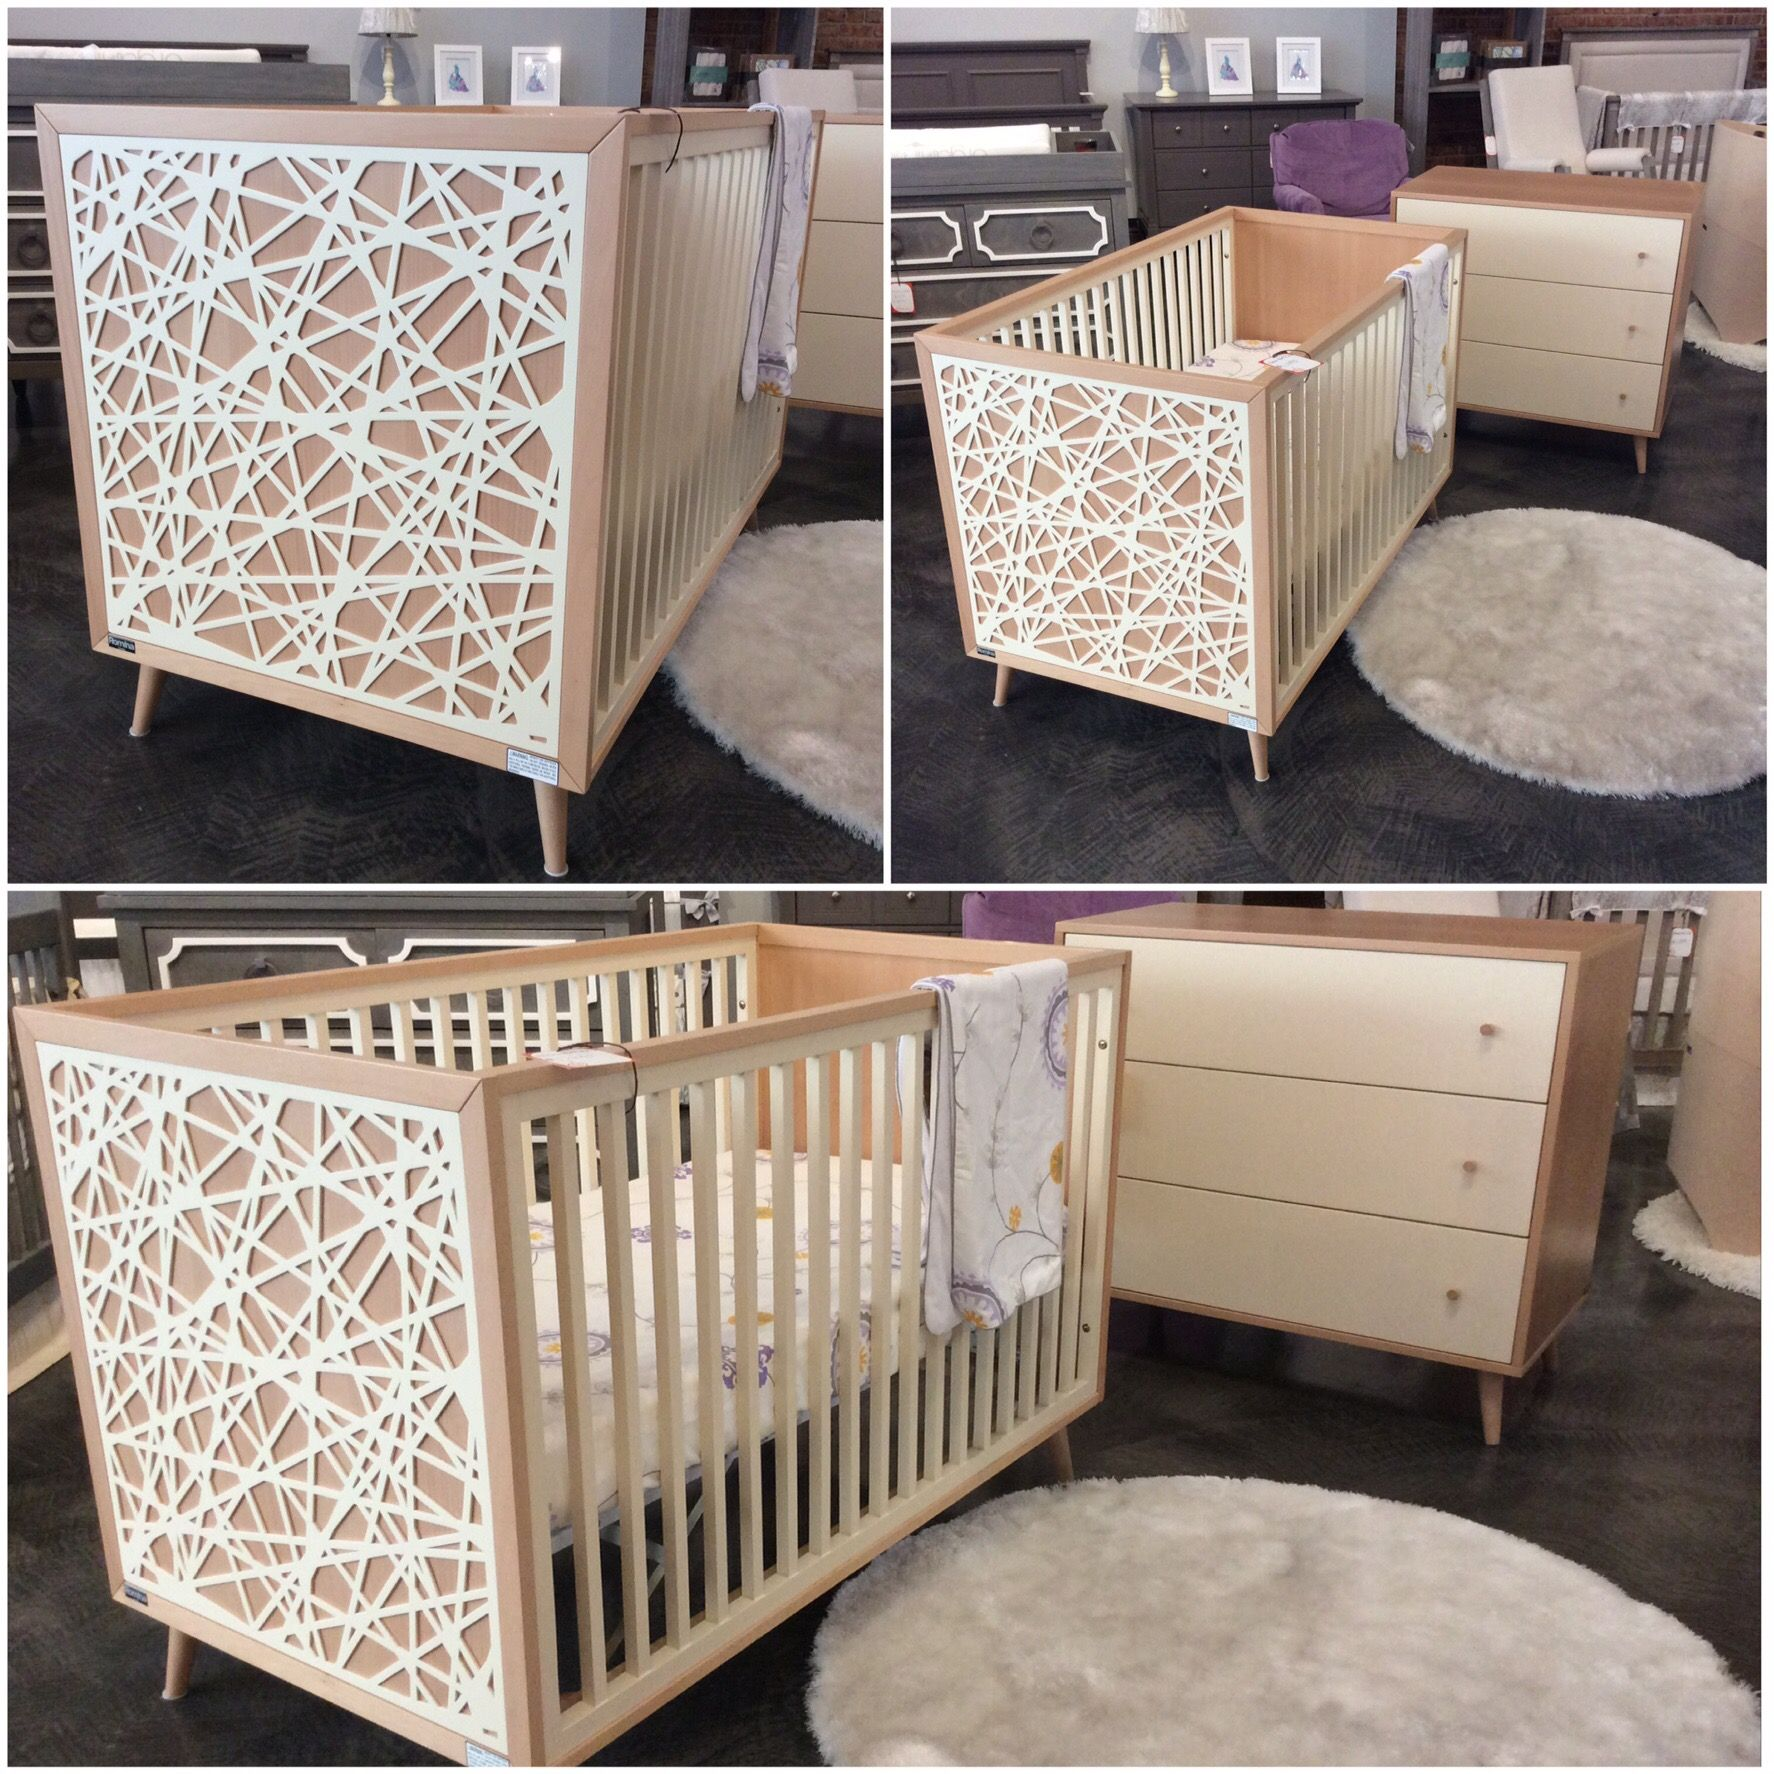 Exceptional Modern Crib And Dresser Using 100% Solid Wood Construction, Non Toxic, Water